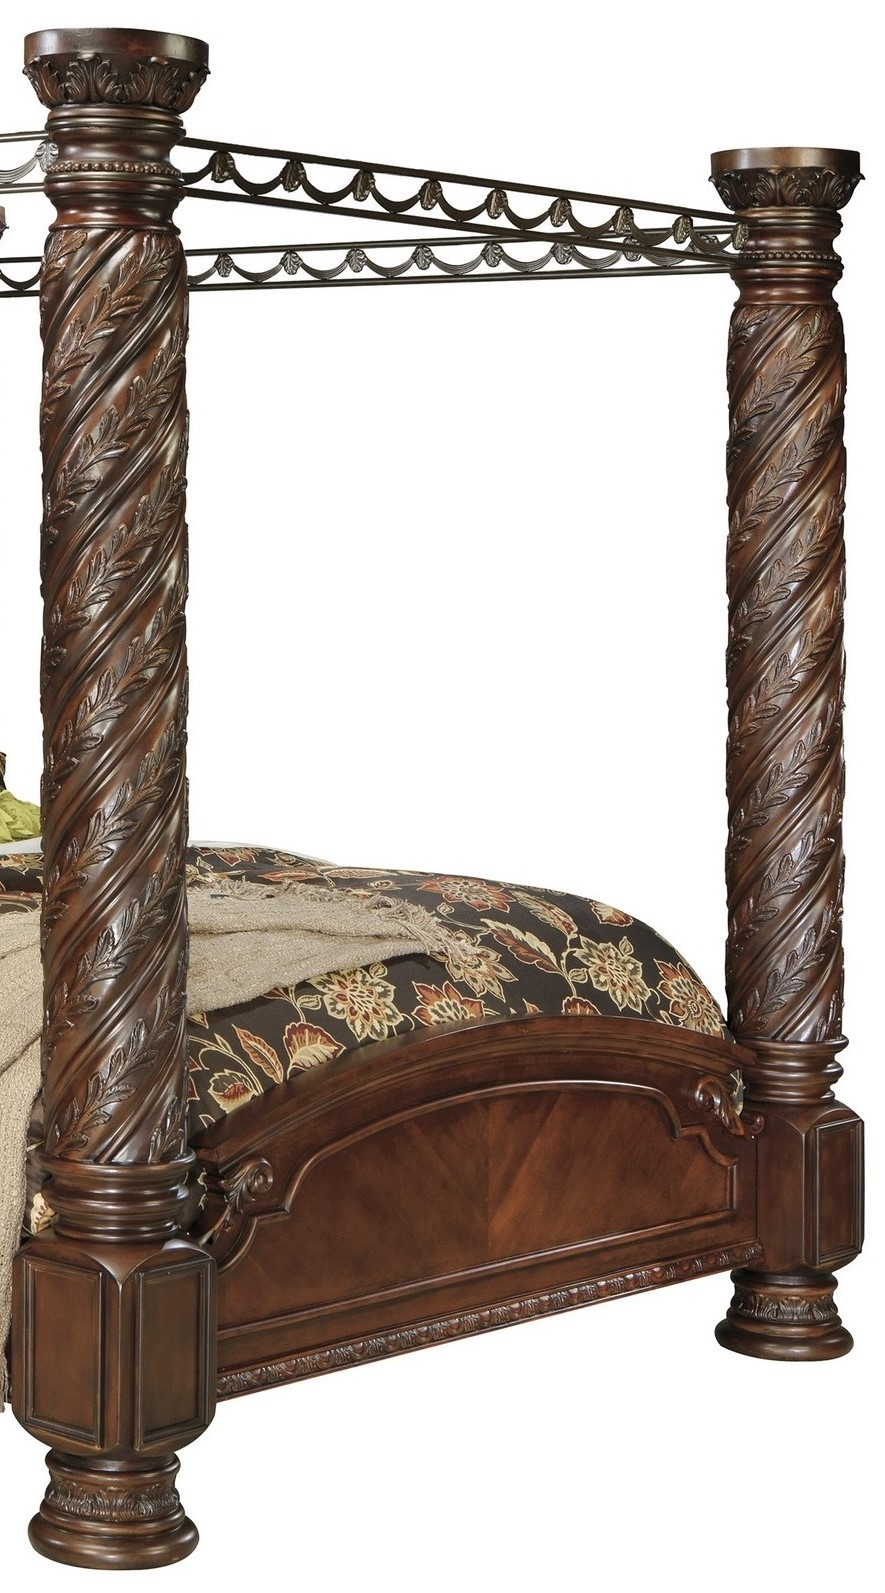 Signature Design By Ashley North Shore Dark Brown 5 Piece King Poster Canopy Bed B553 172 B553 150 B553 151 B553 162 B553 199 Goedekers Com